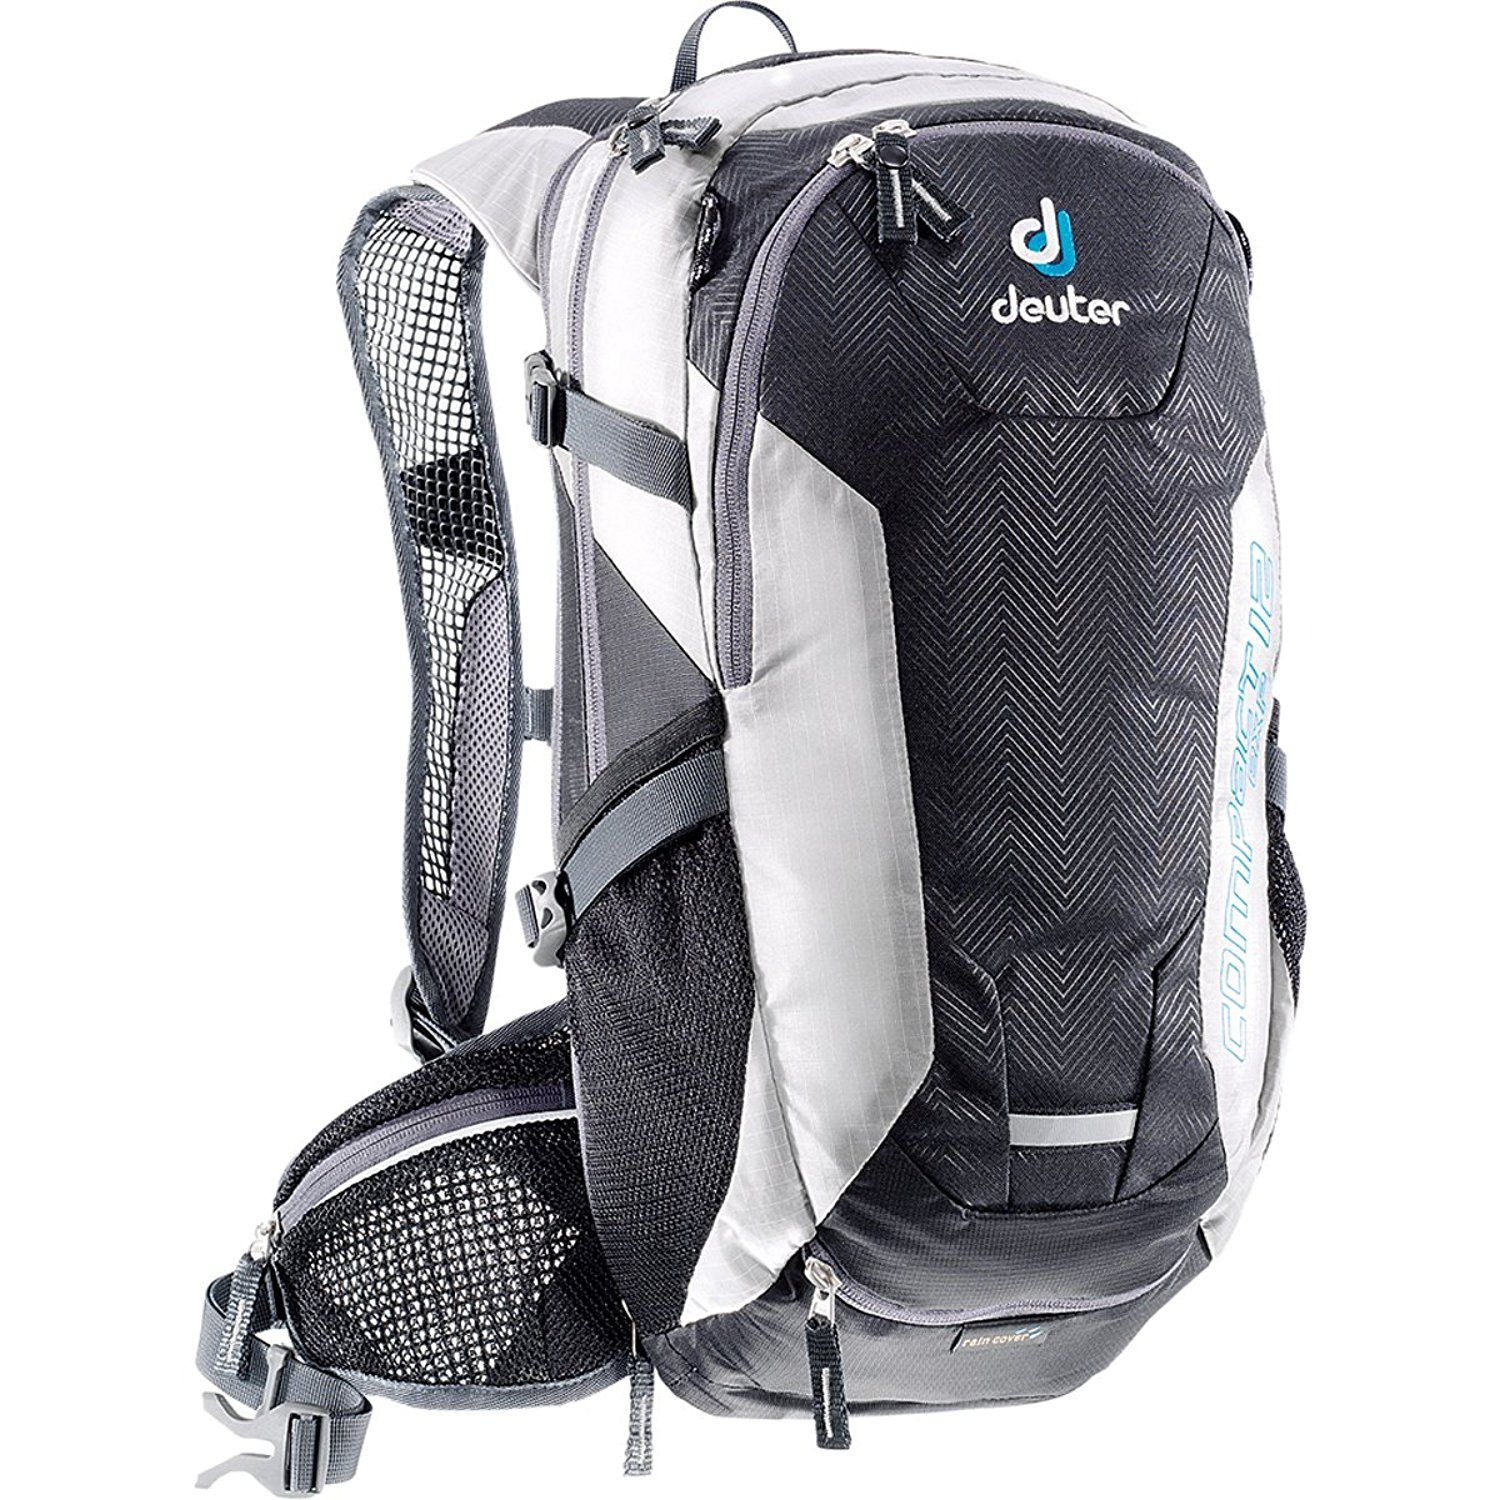 Deuter Compact Exp 12 Backpack, Black/White, 19X9.4X7.1 * Continue ...